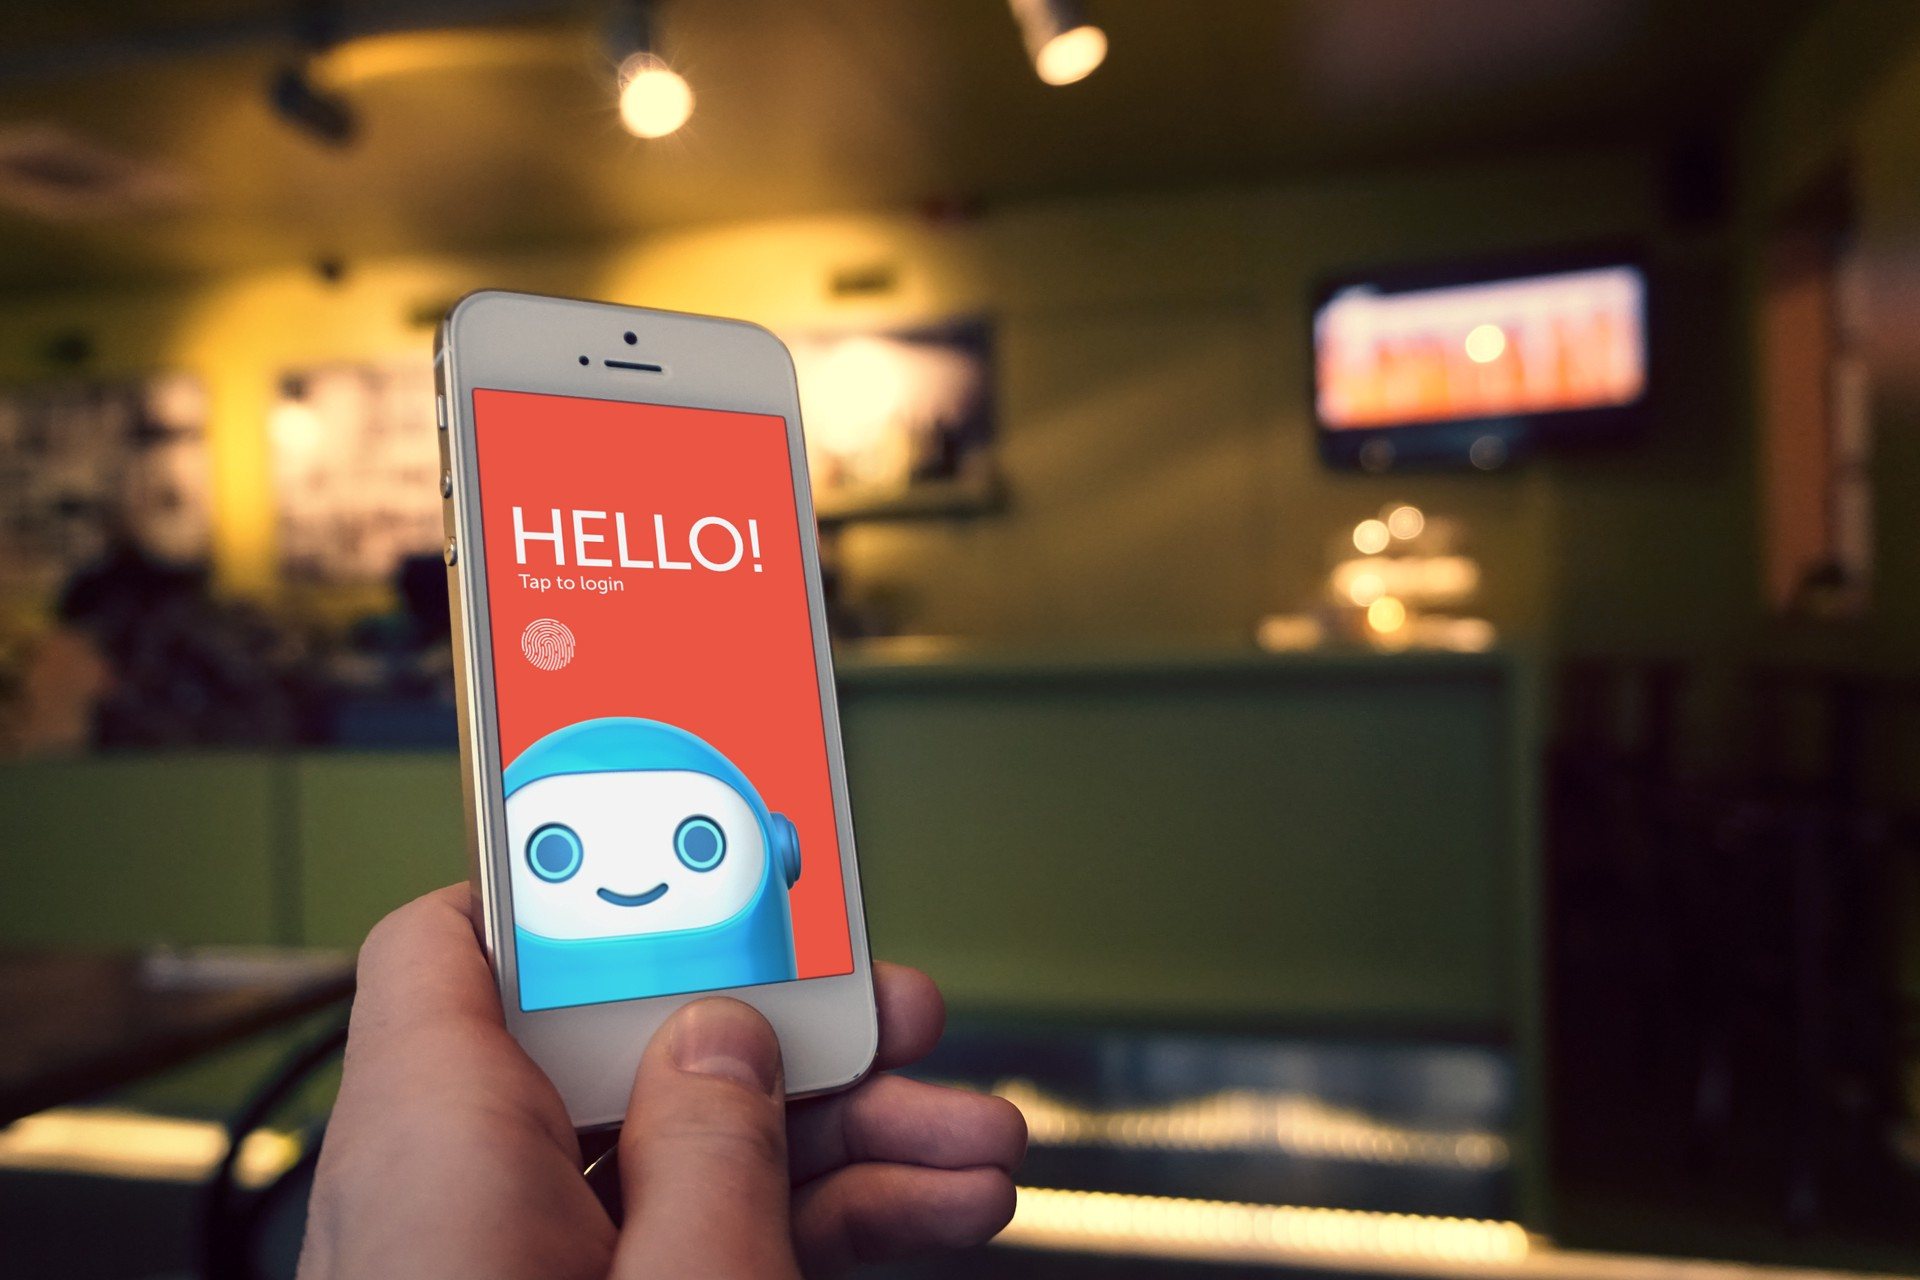 What We Learned Designing a Chatbot for Banking